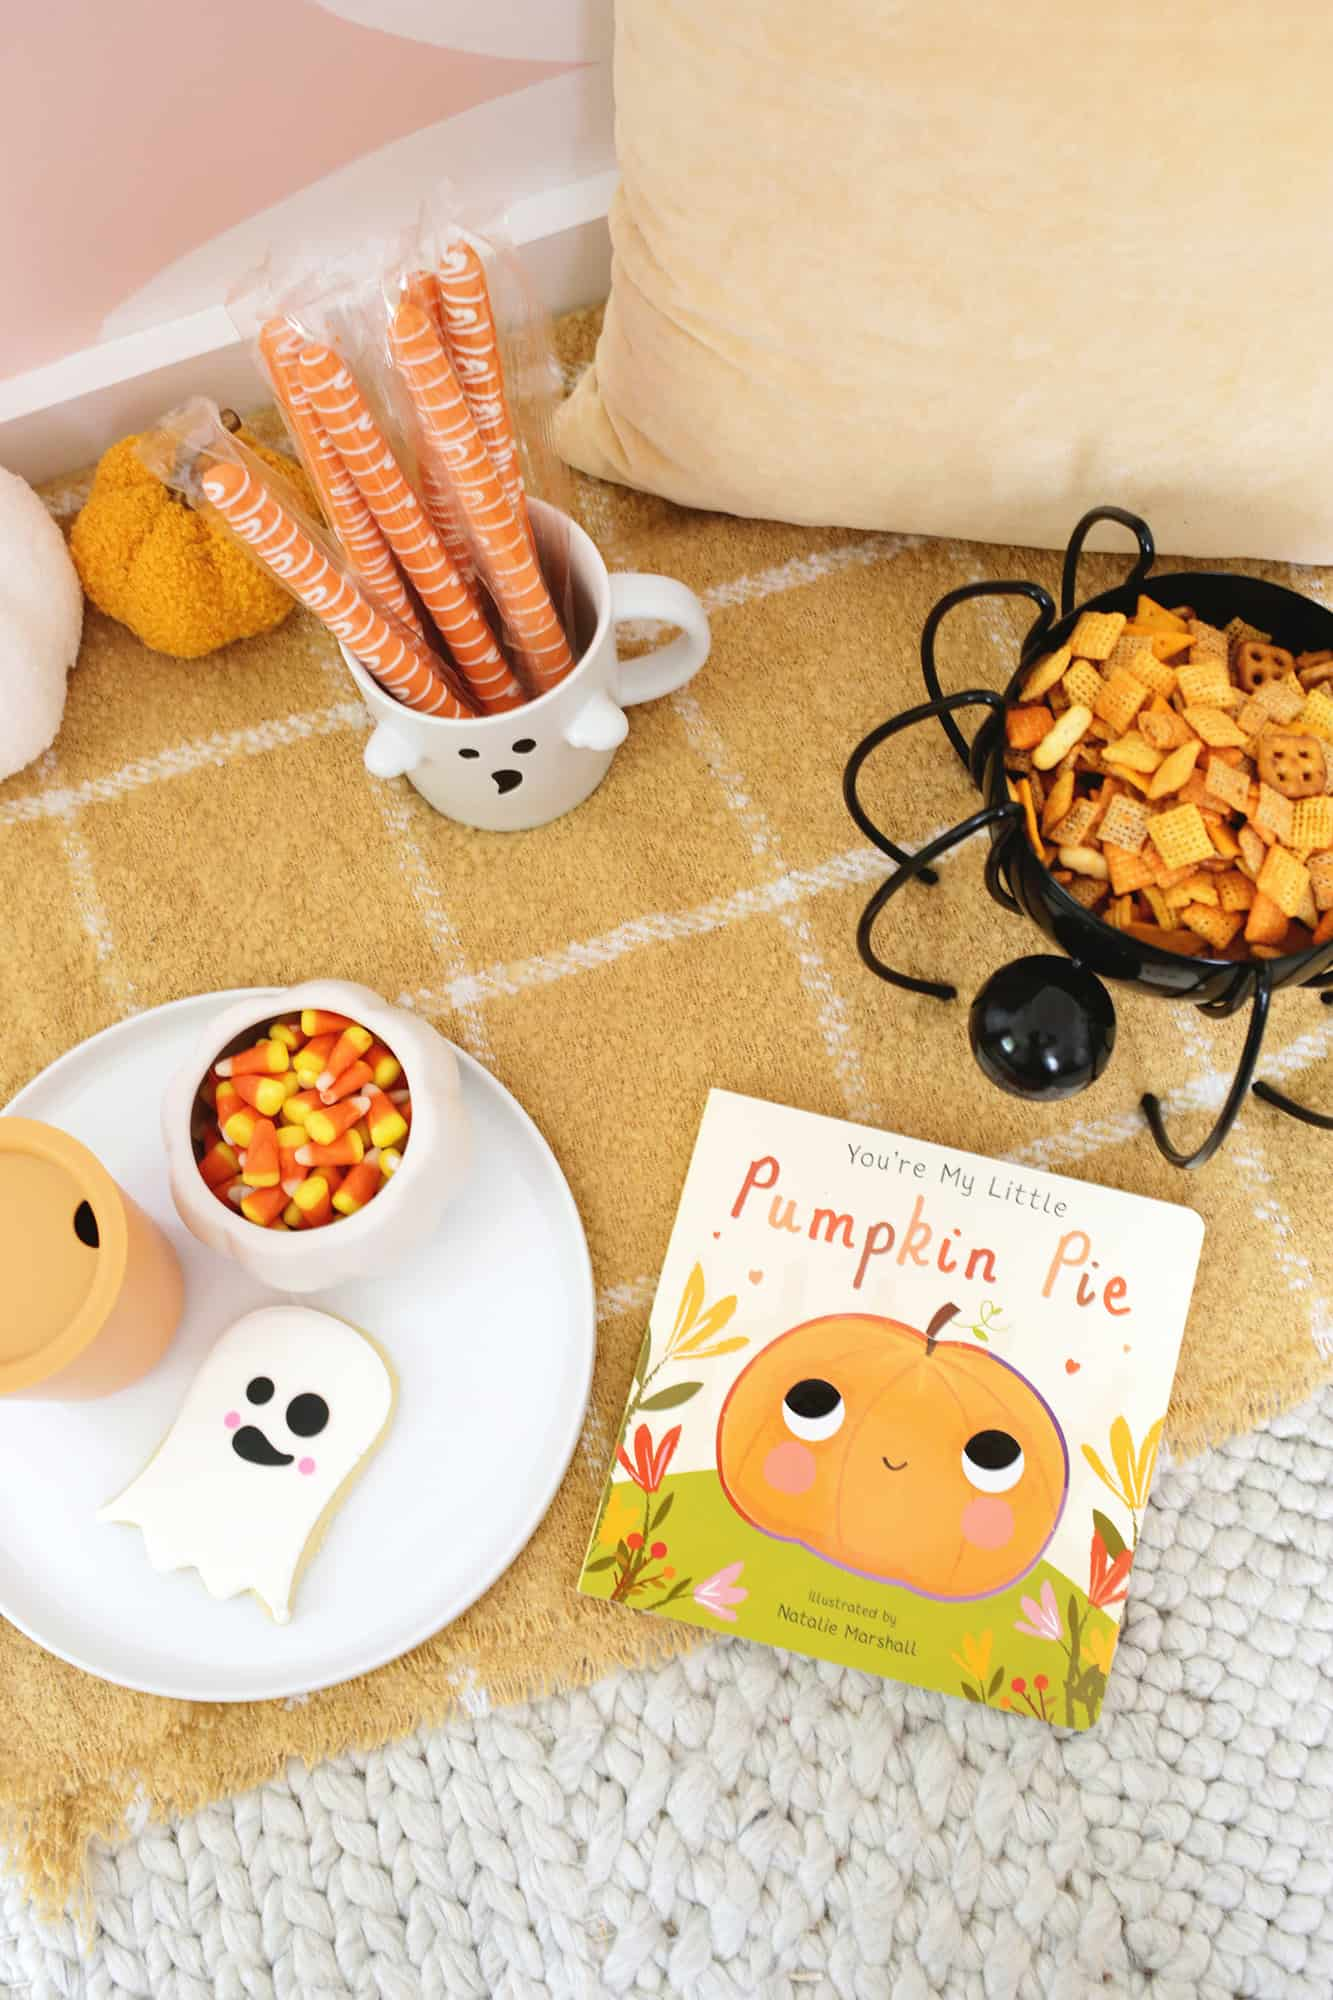 book with a pumpkin on it sitting by snacks on a blanket